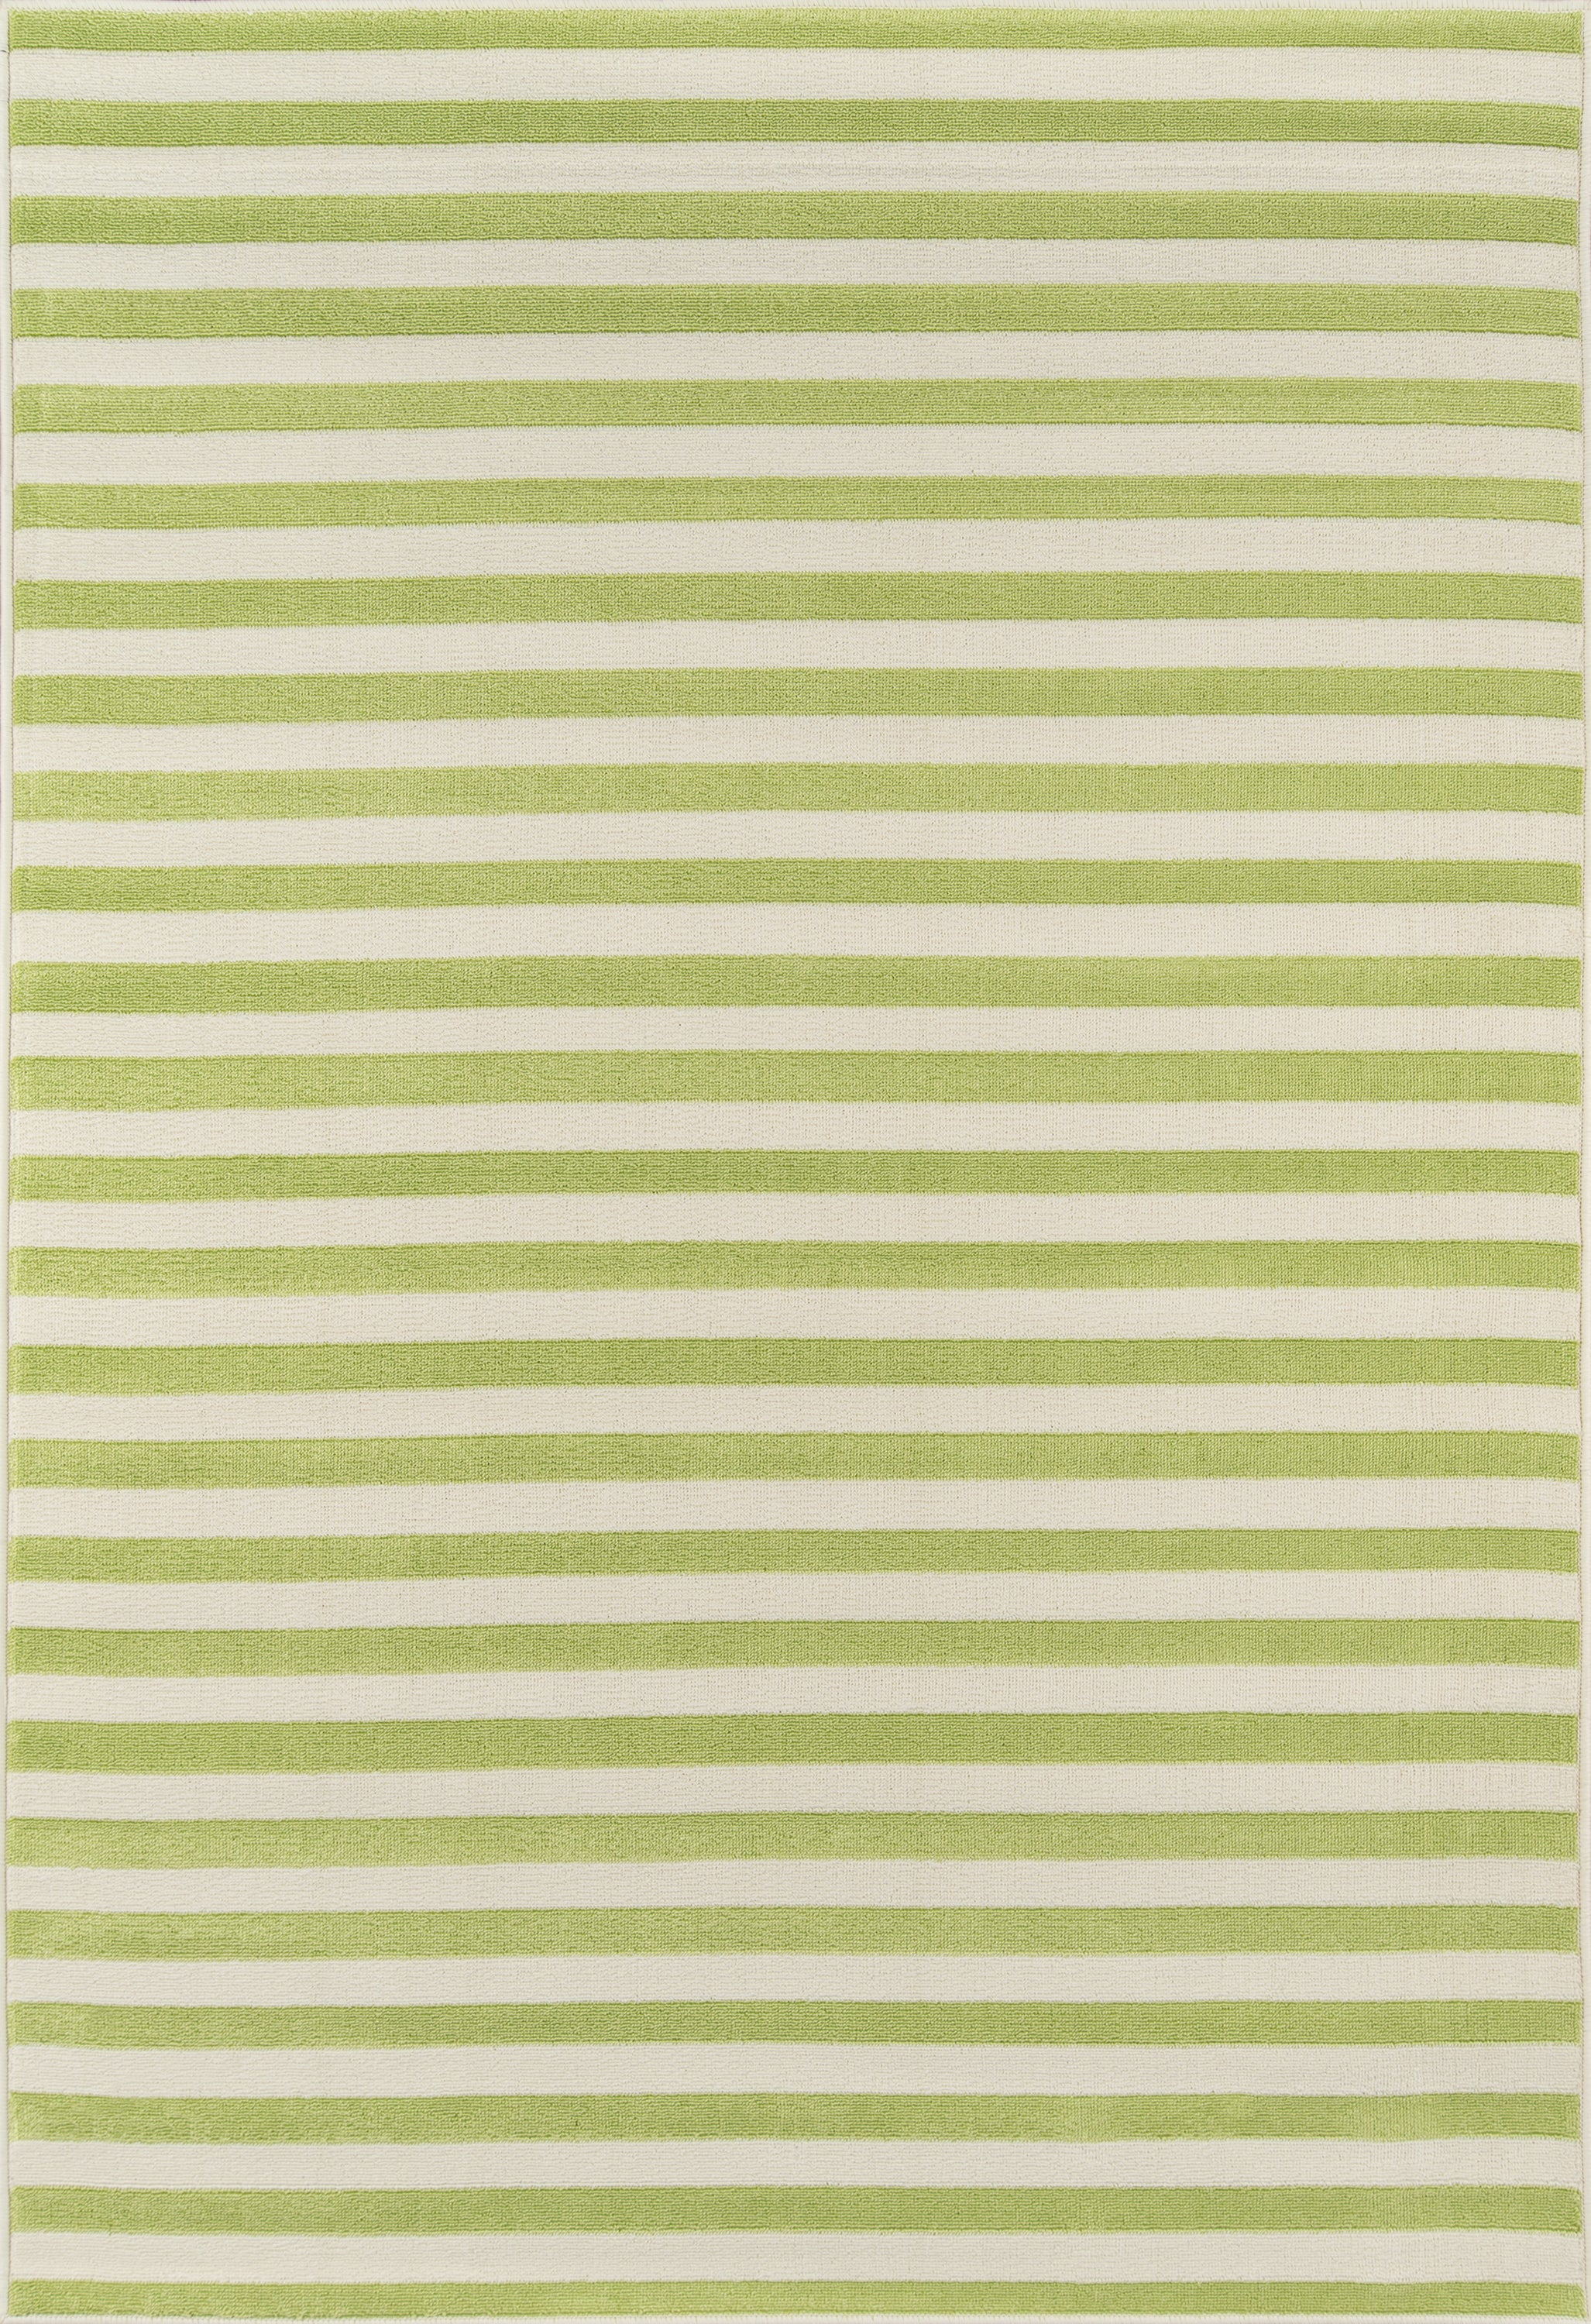 Rectangle 53x76 Green Striped Machine Made Synthetics Contemporary recommended for Kitchen, Bedroom, Bathroom, Outdoor, Dining Room, Office, Hallway, Living Room